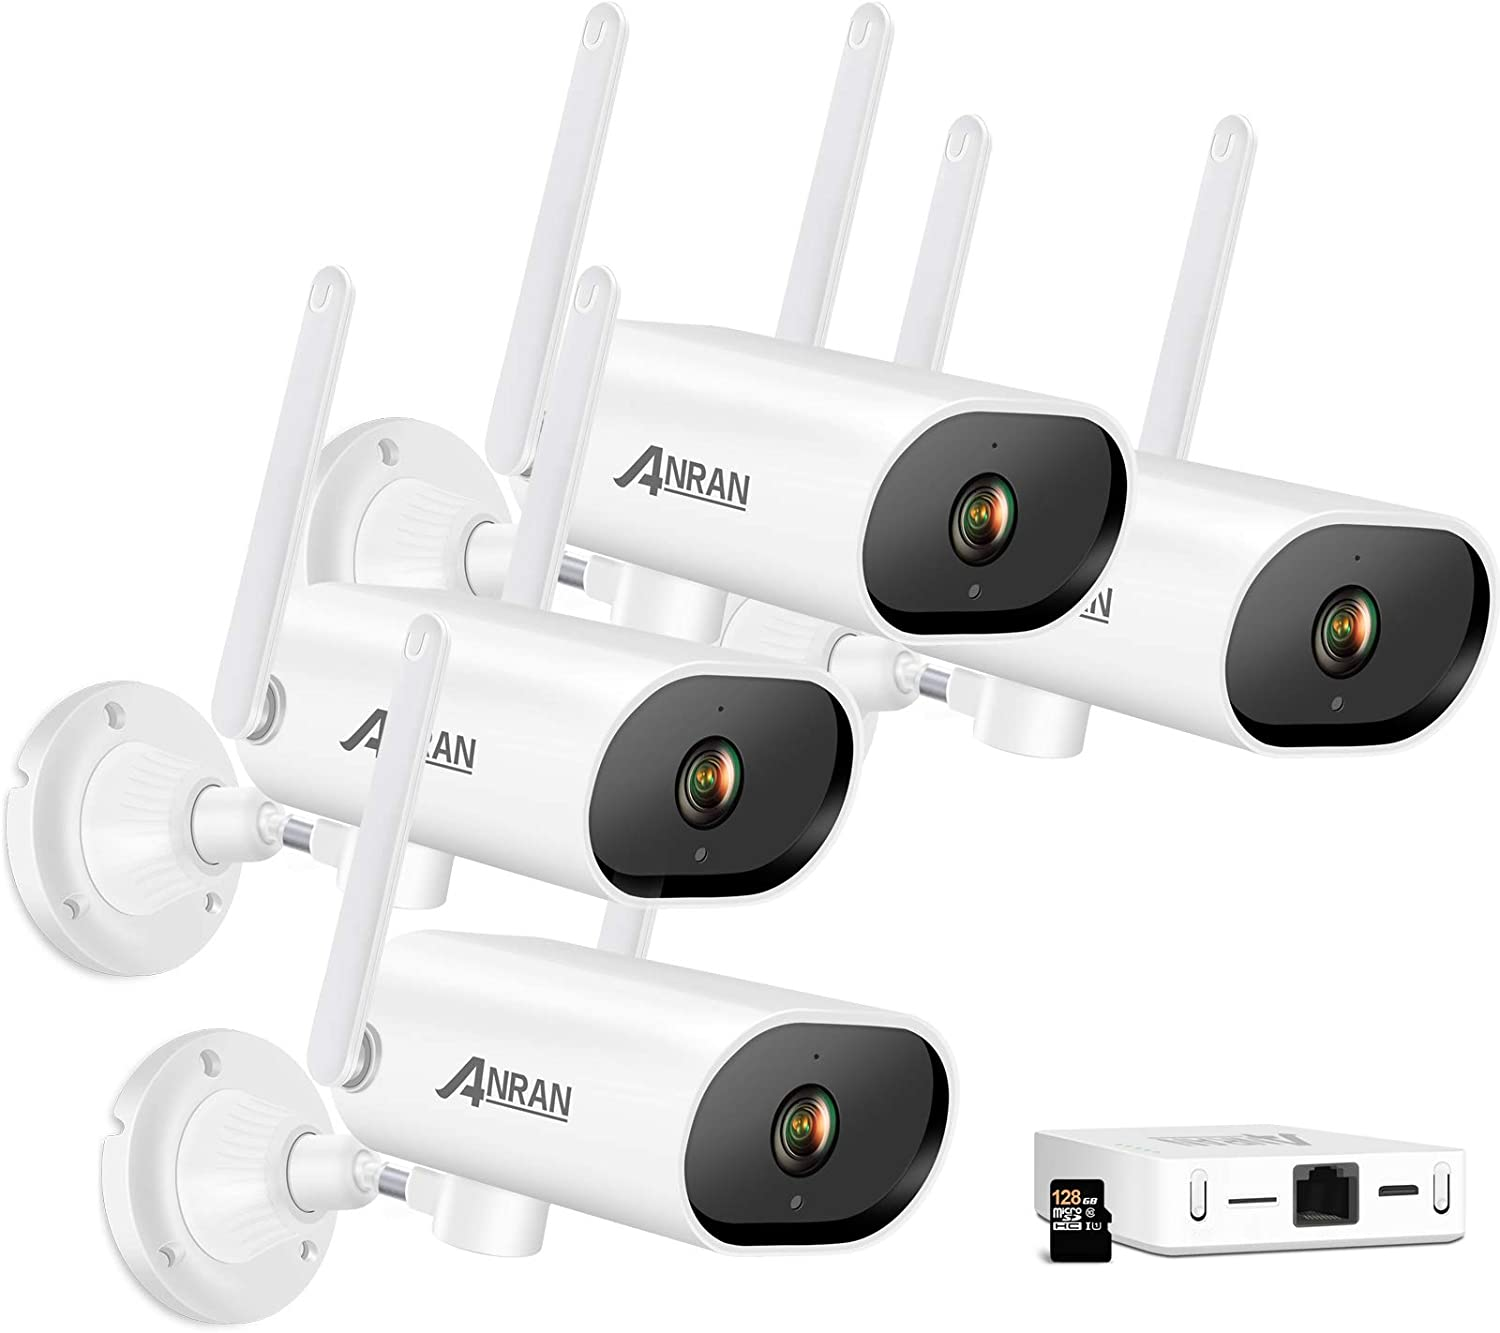 ANRAN 3MP Wireless Camera System, 4 Channel Mini NVR WiFi Outdoor Security Camera with One-Way Audio, Night Vision, Motion Alert, Remote View, Surveillance Cameras for Home Security, 128G SD Card